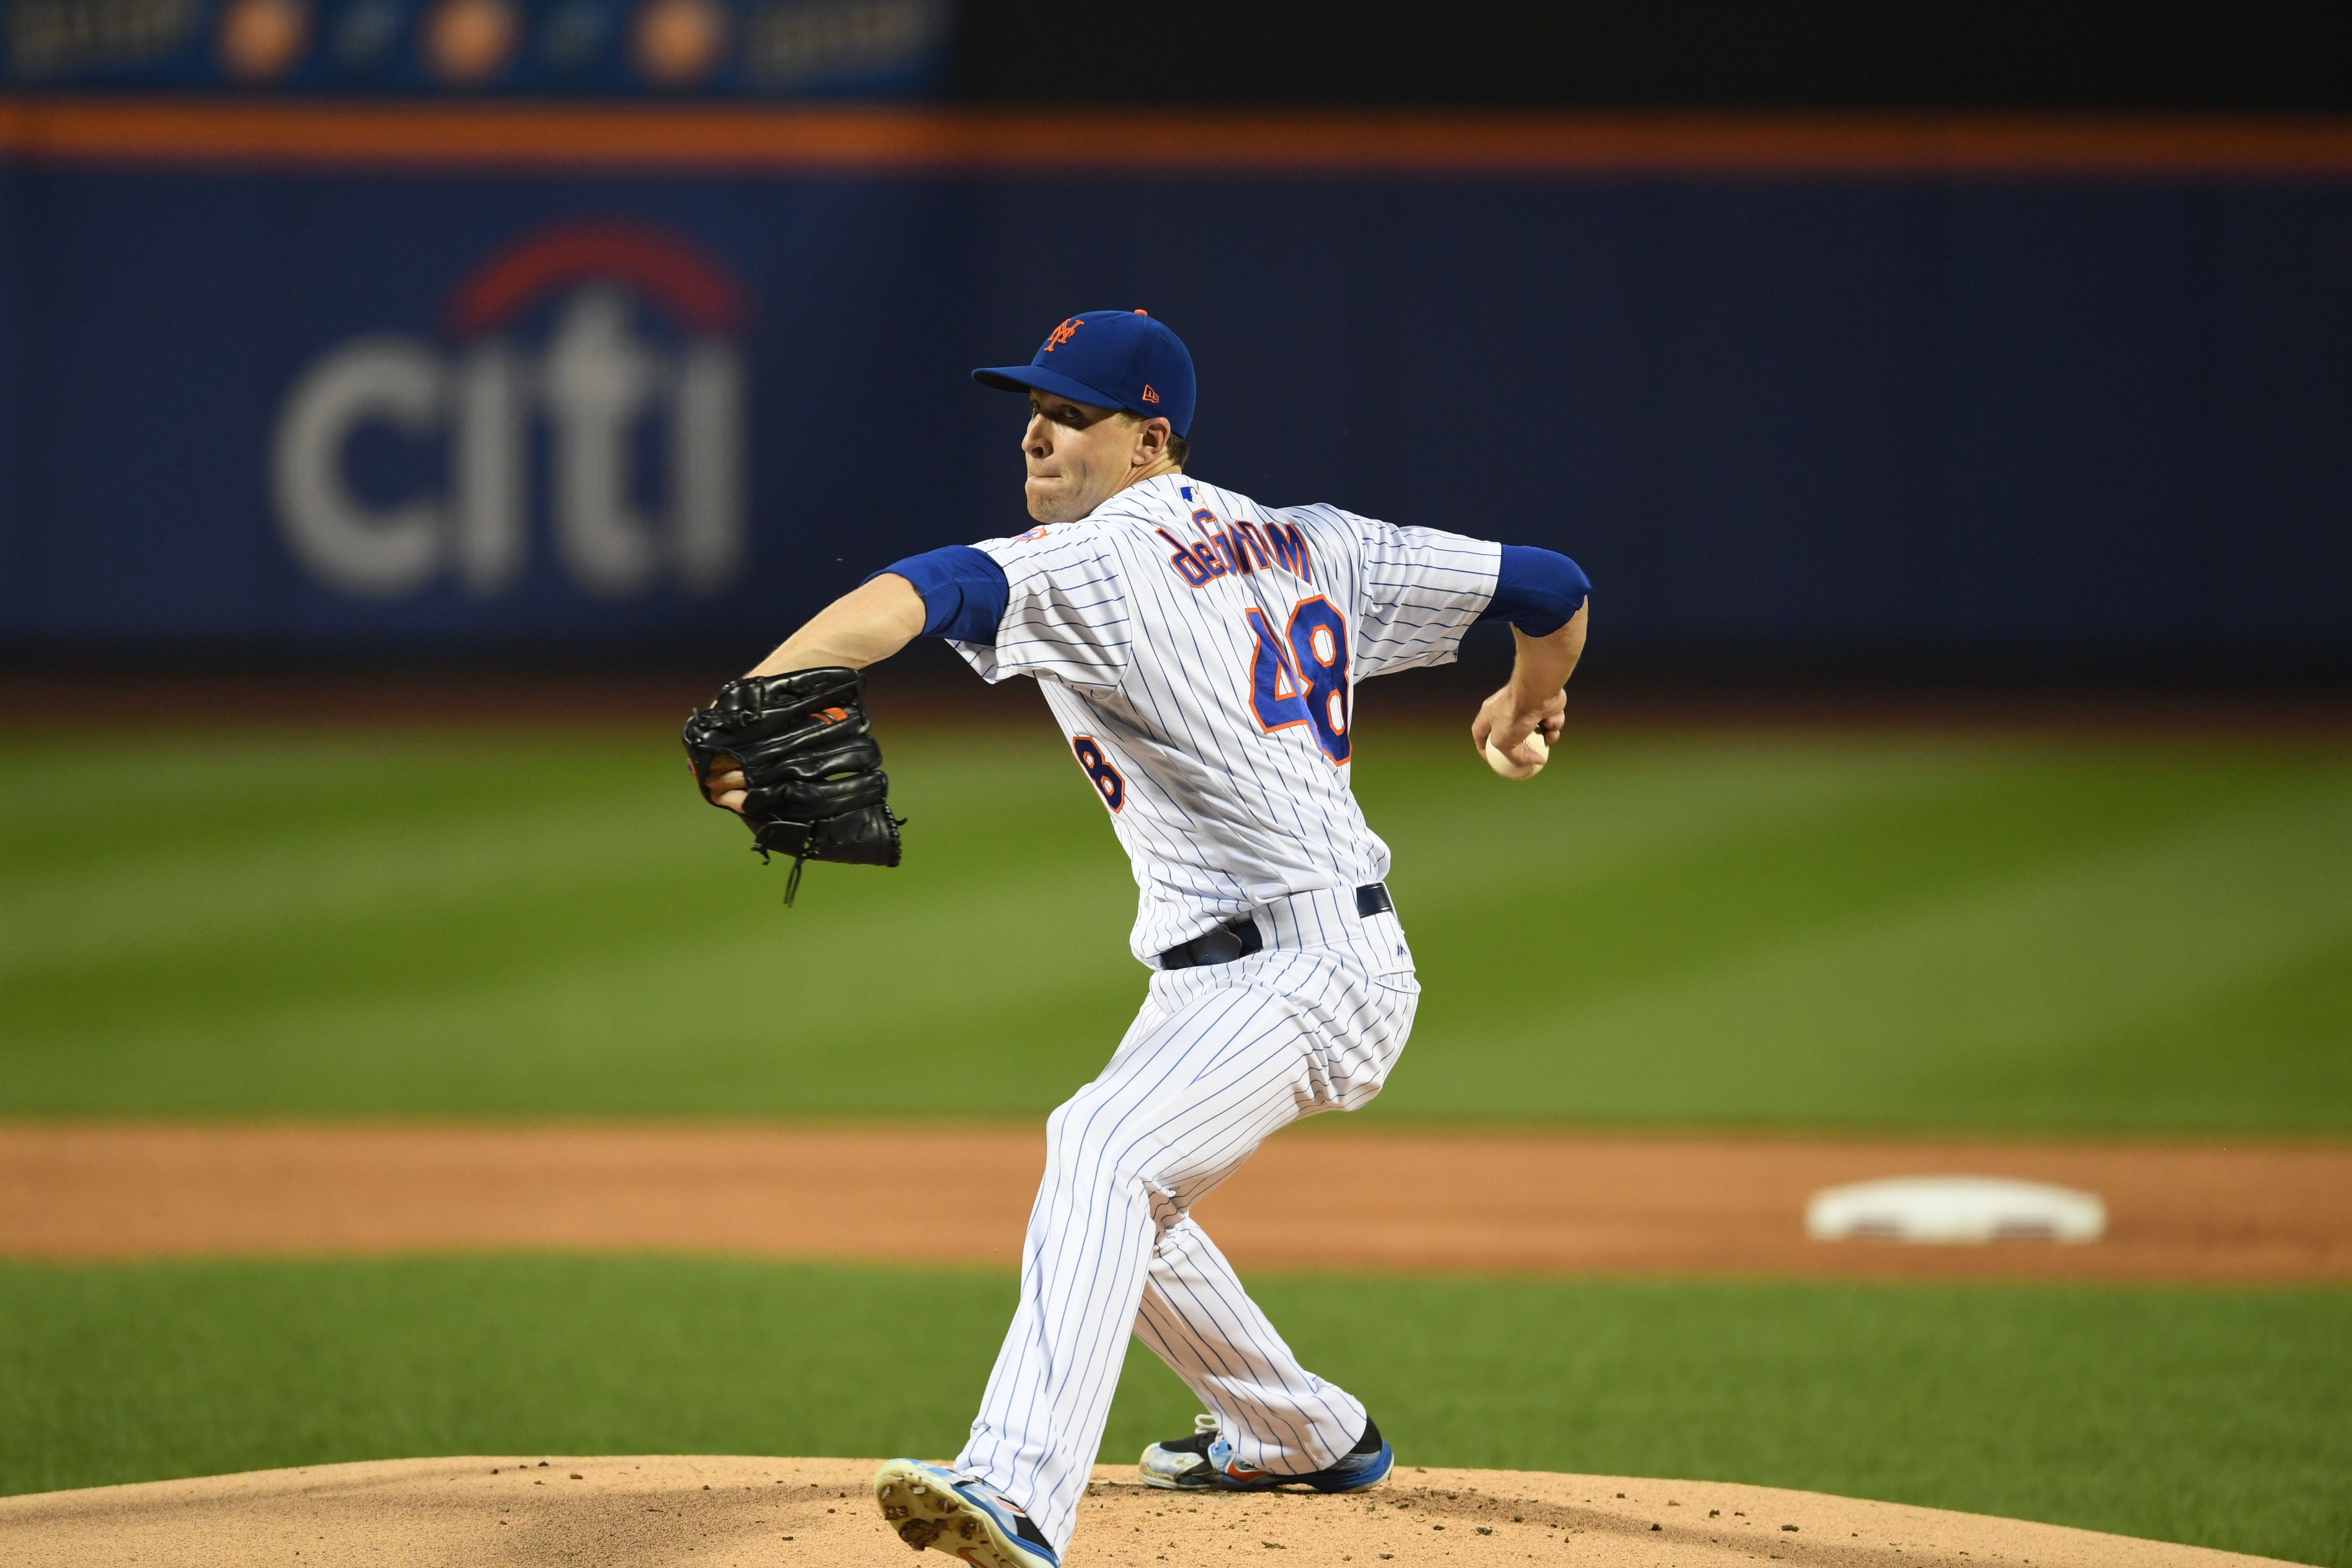 Pitcher Jacob deGrom finished last season with a 10-9 record and 1.70 ERA (leading the majors). He won the 2018 National League Cy Young Award and was fifth in the NL Most Valuable Player voting.